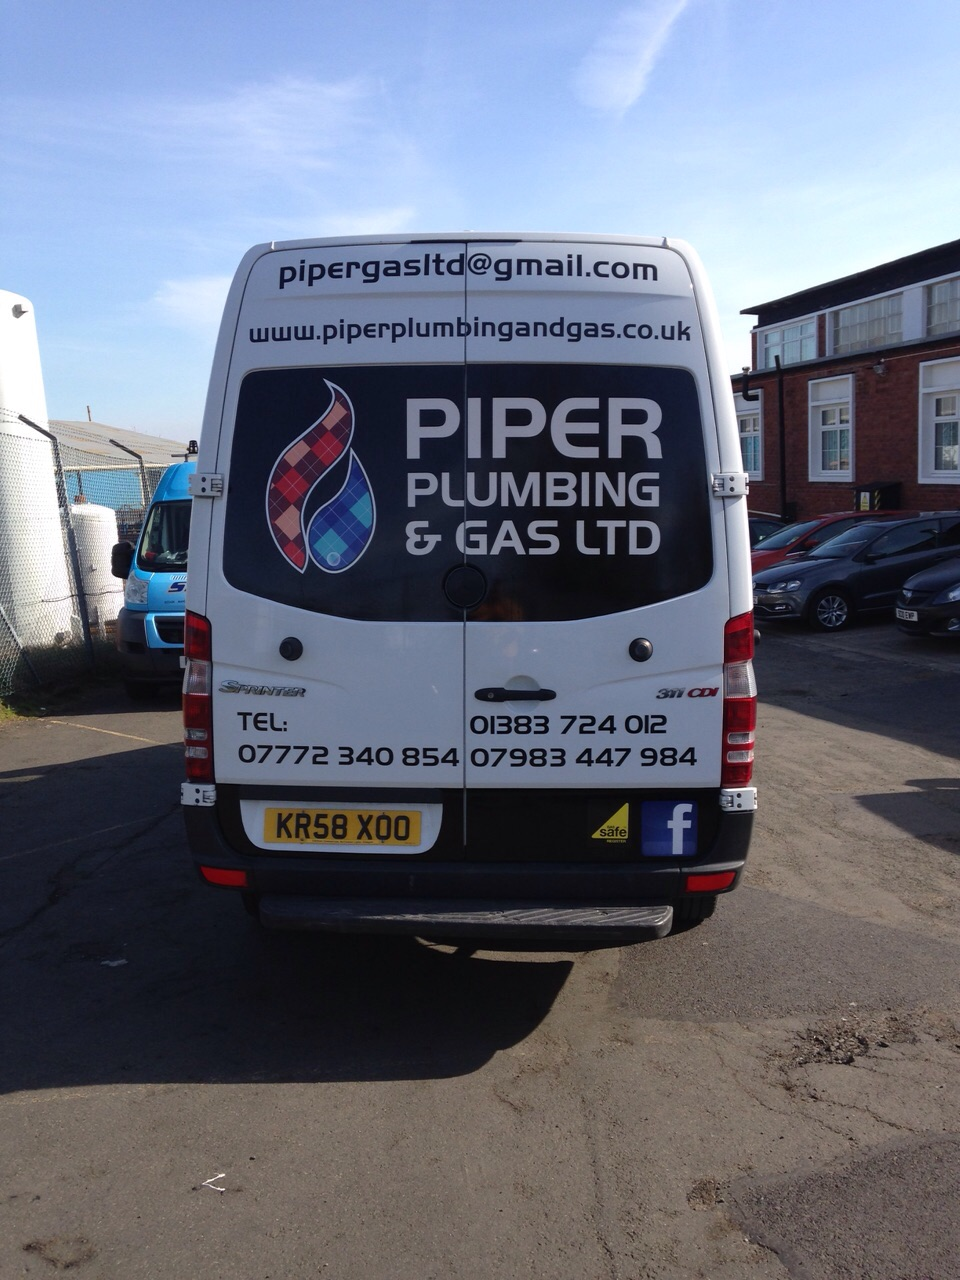 b8a7ef8172 New Livery for Piper Plumbing by Sign Plus - Sign Plus